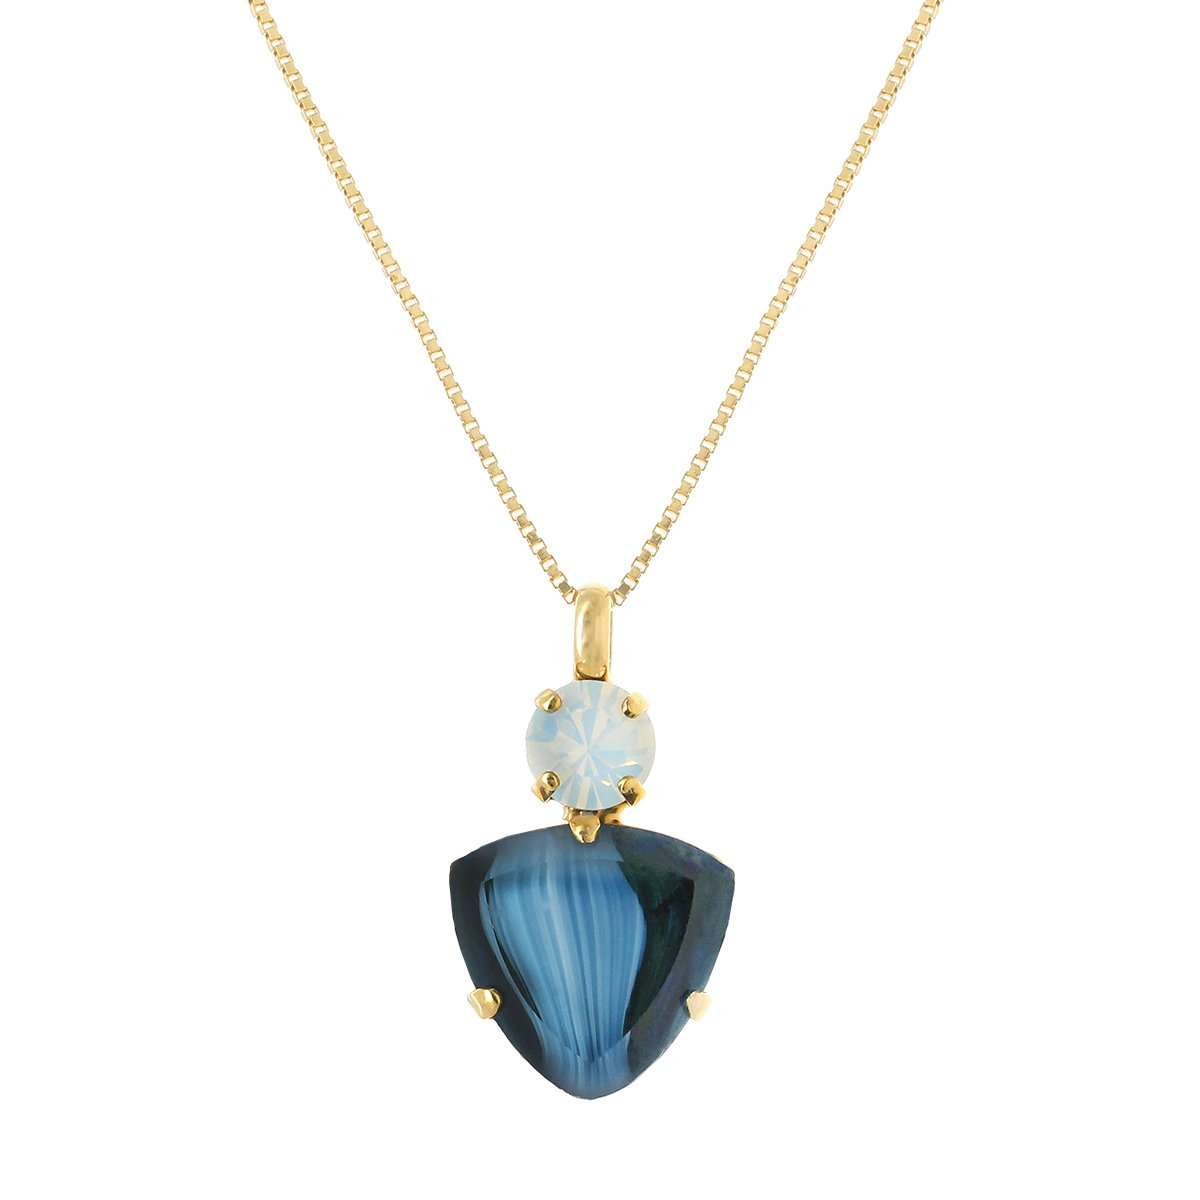 Agate Ocean Blue Necklace